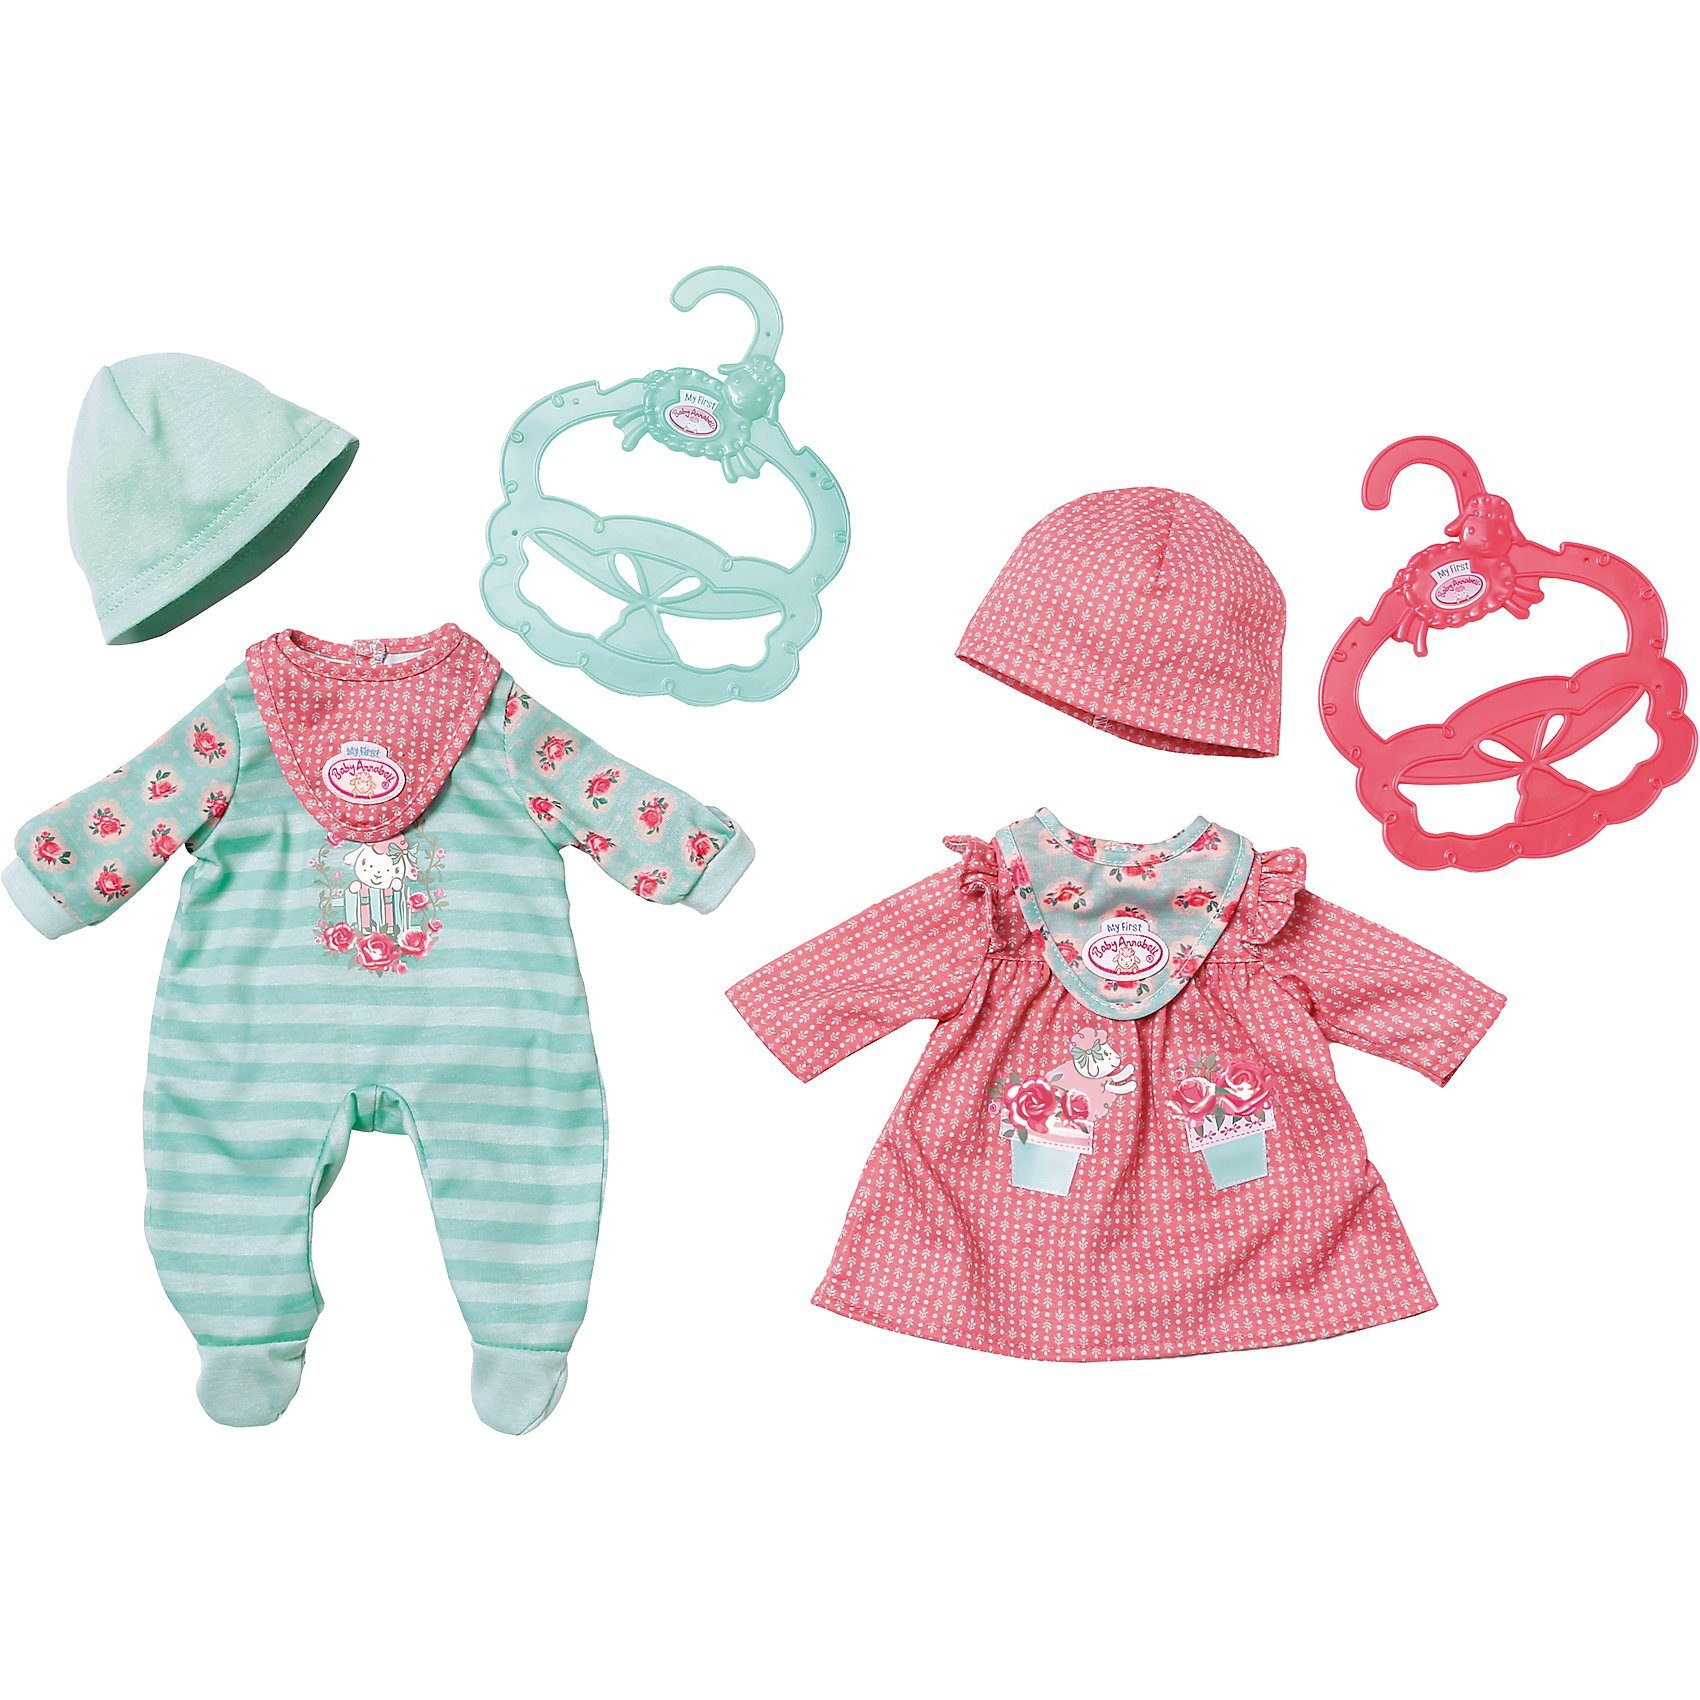 Zapf Creation® My First Baby Annabell® Kuschel Outfit